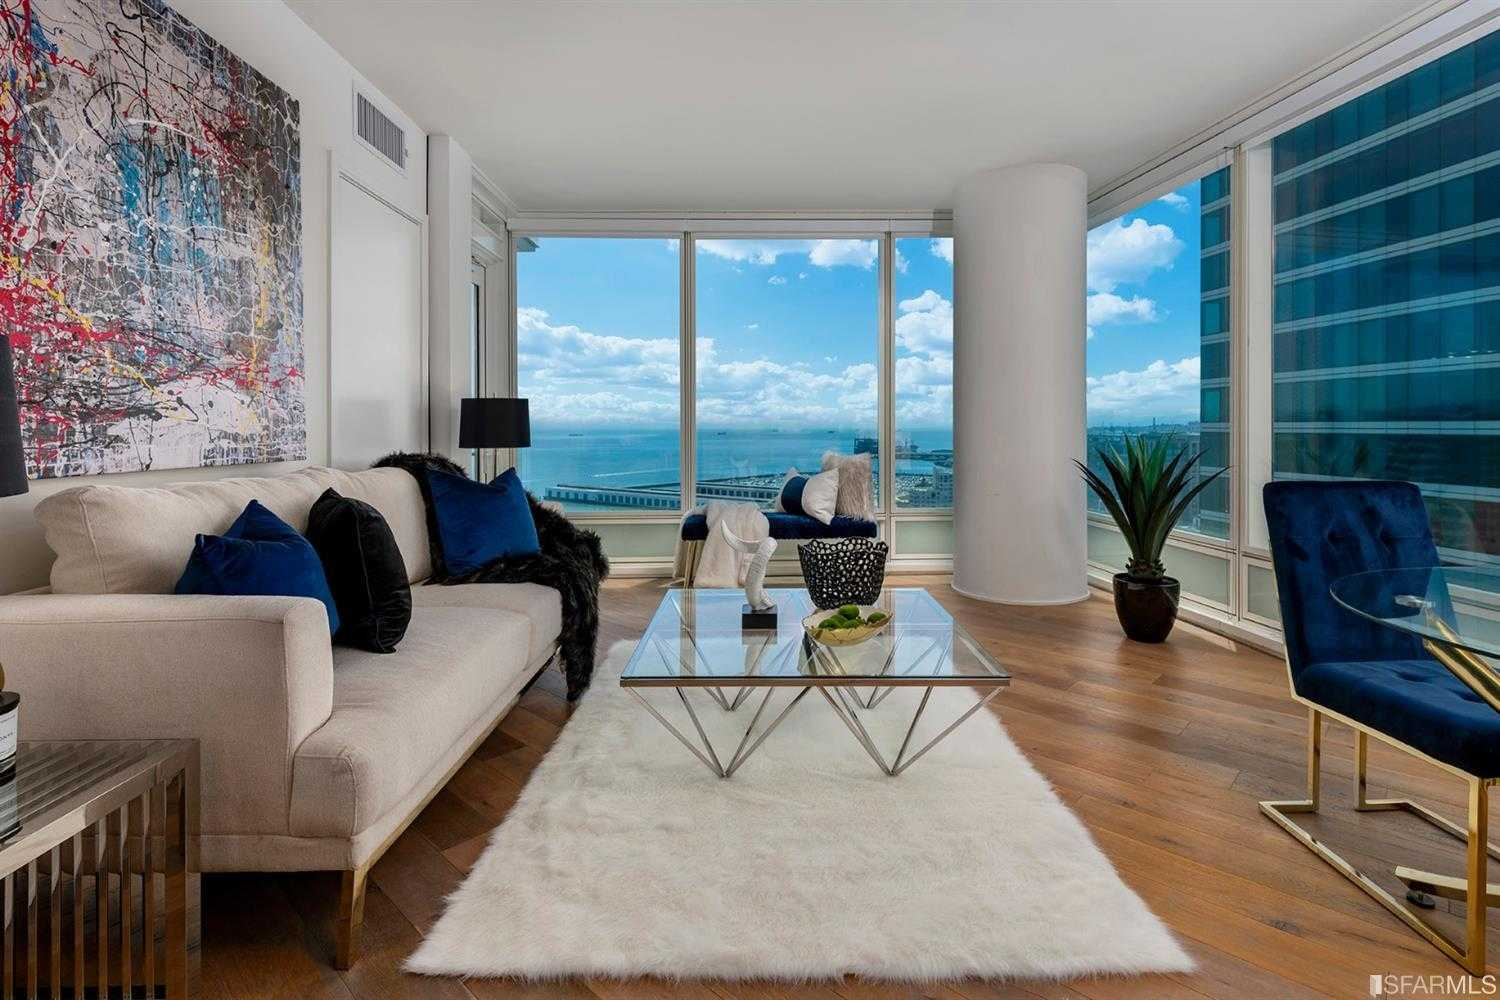 $1,249,000 - 1Br/1Ba -  for Sale in San Francisco